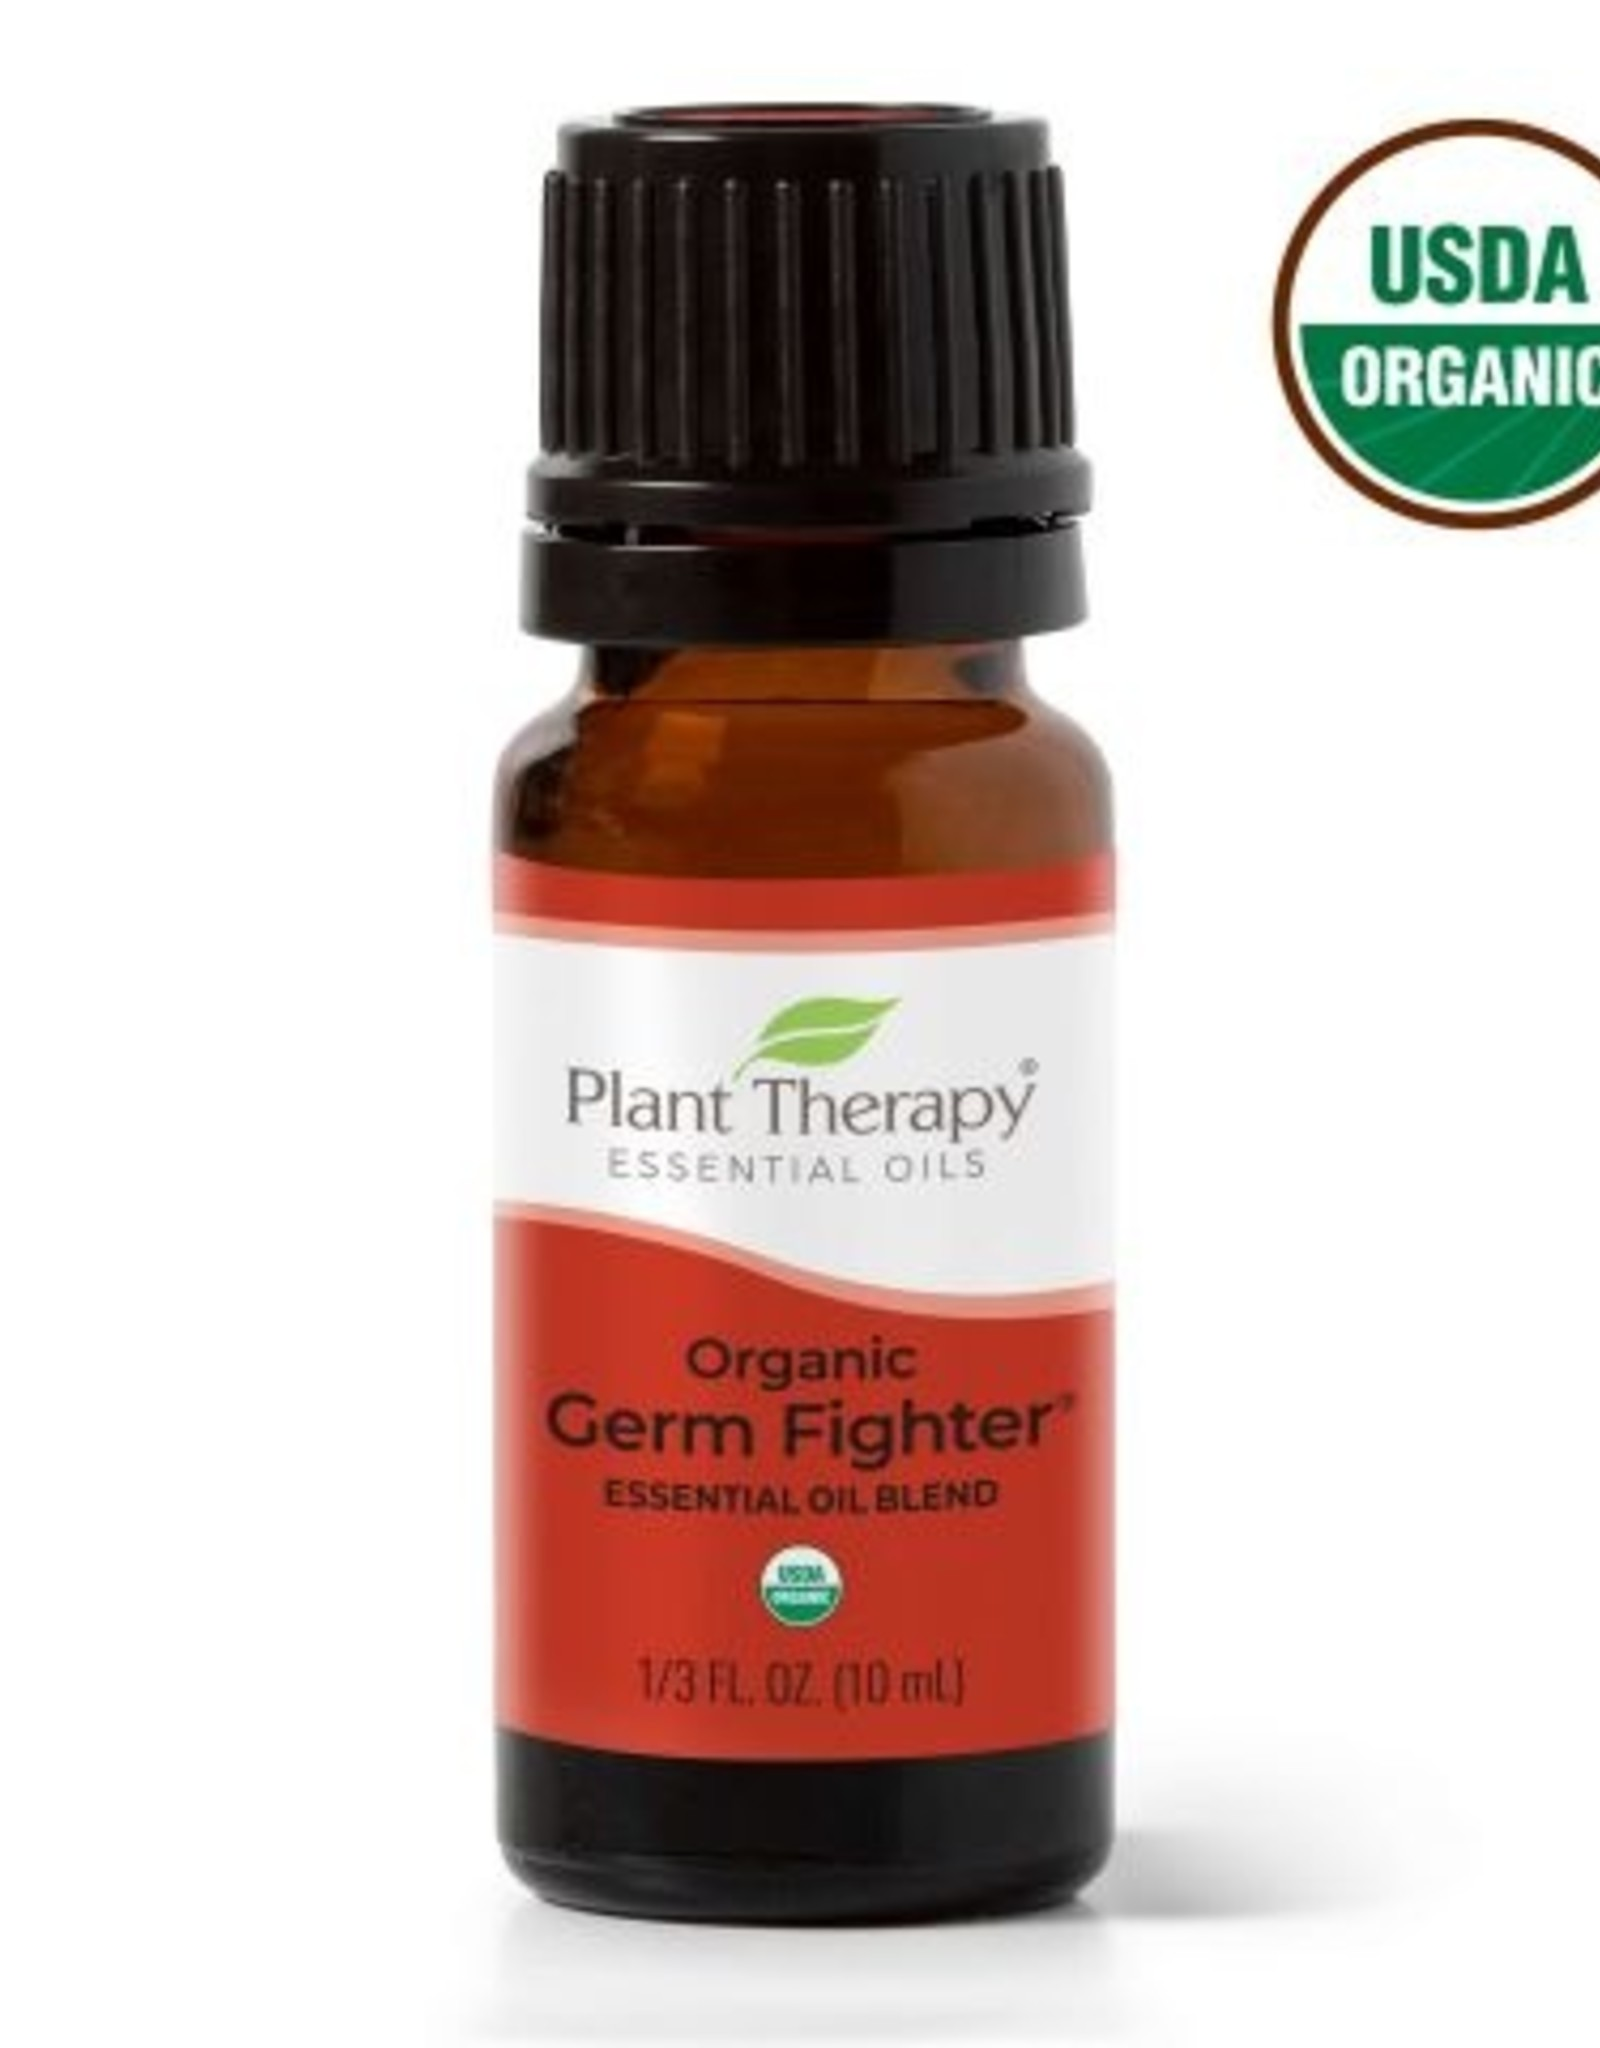 Plant Therapy Germ Fighter Organic Essential Oil Blend 10ml